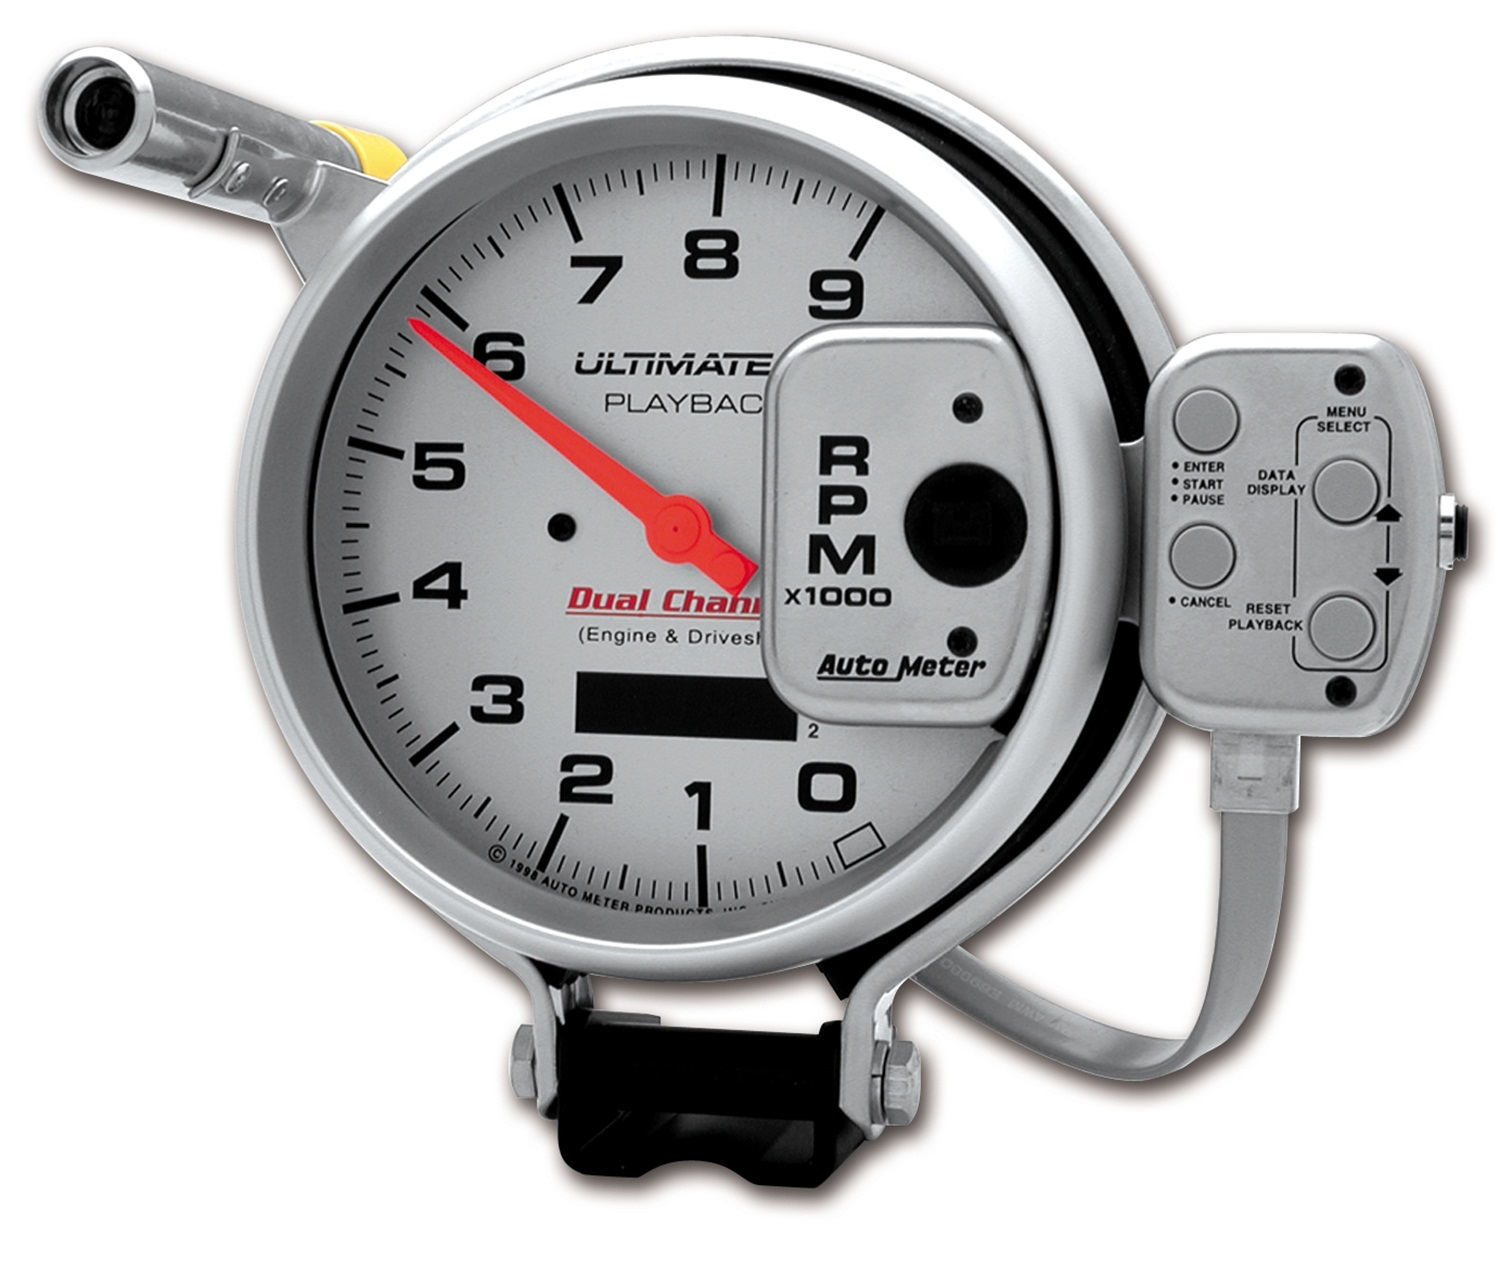 Auto Gage Tach Wiring Great Design Of Diagram Sunpro Super Gauges Proform Tachometer Vdo Autogage